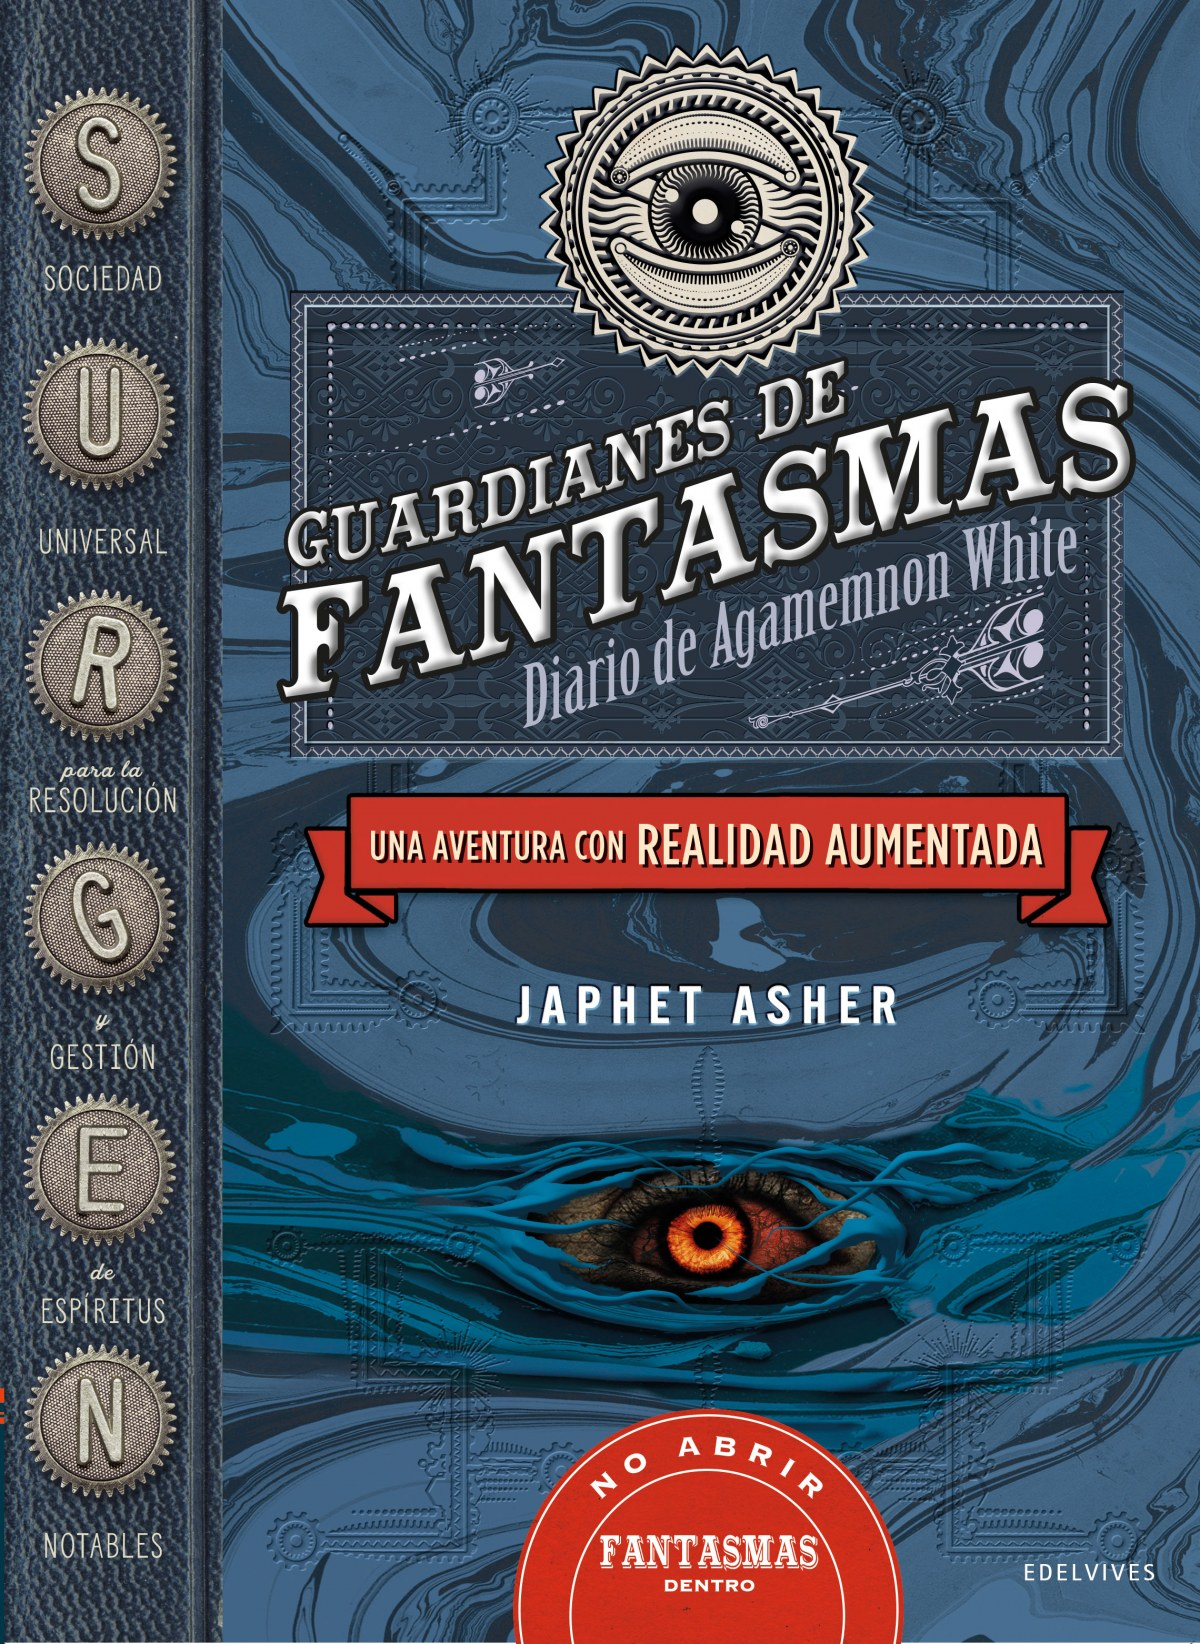 GUARDIANES DE FANTASMAS 9788414016947